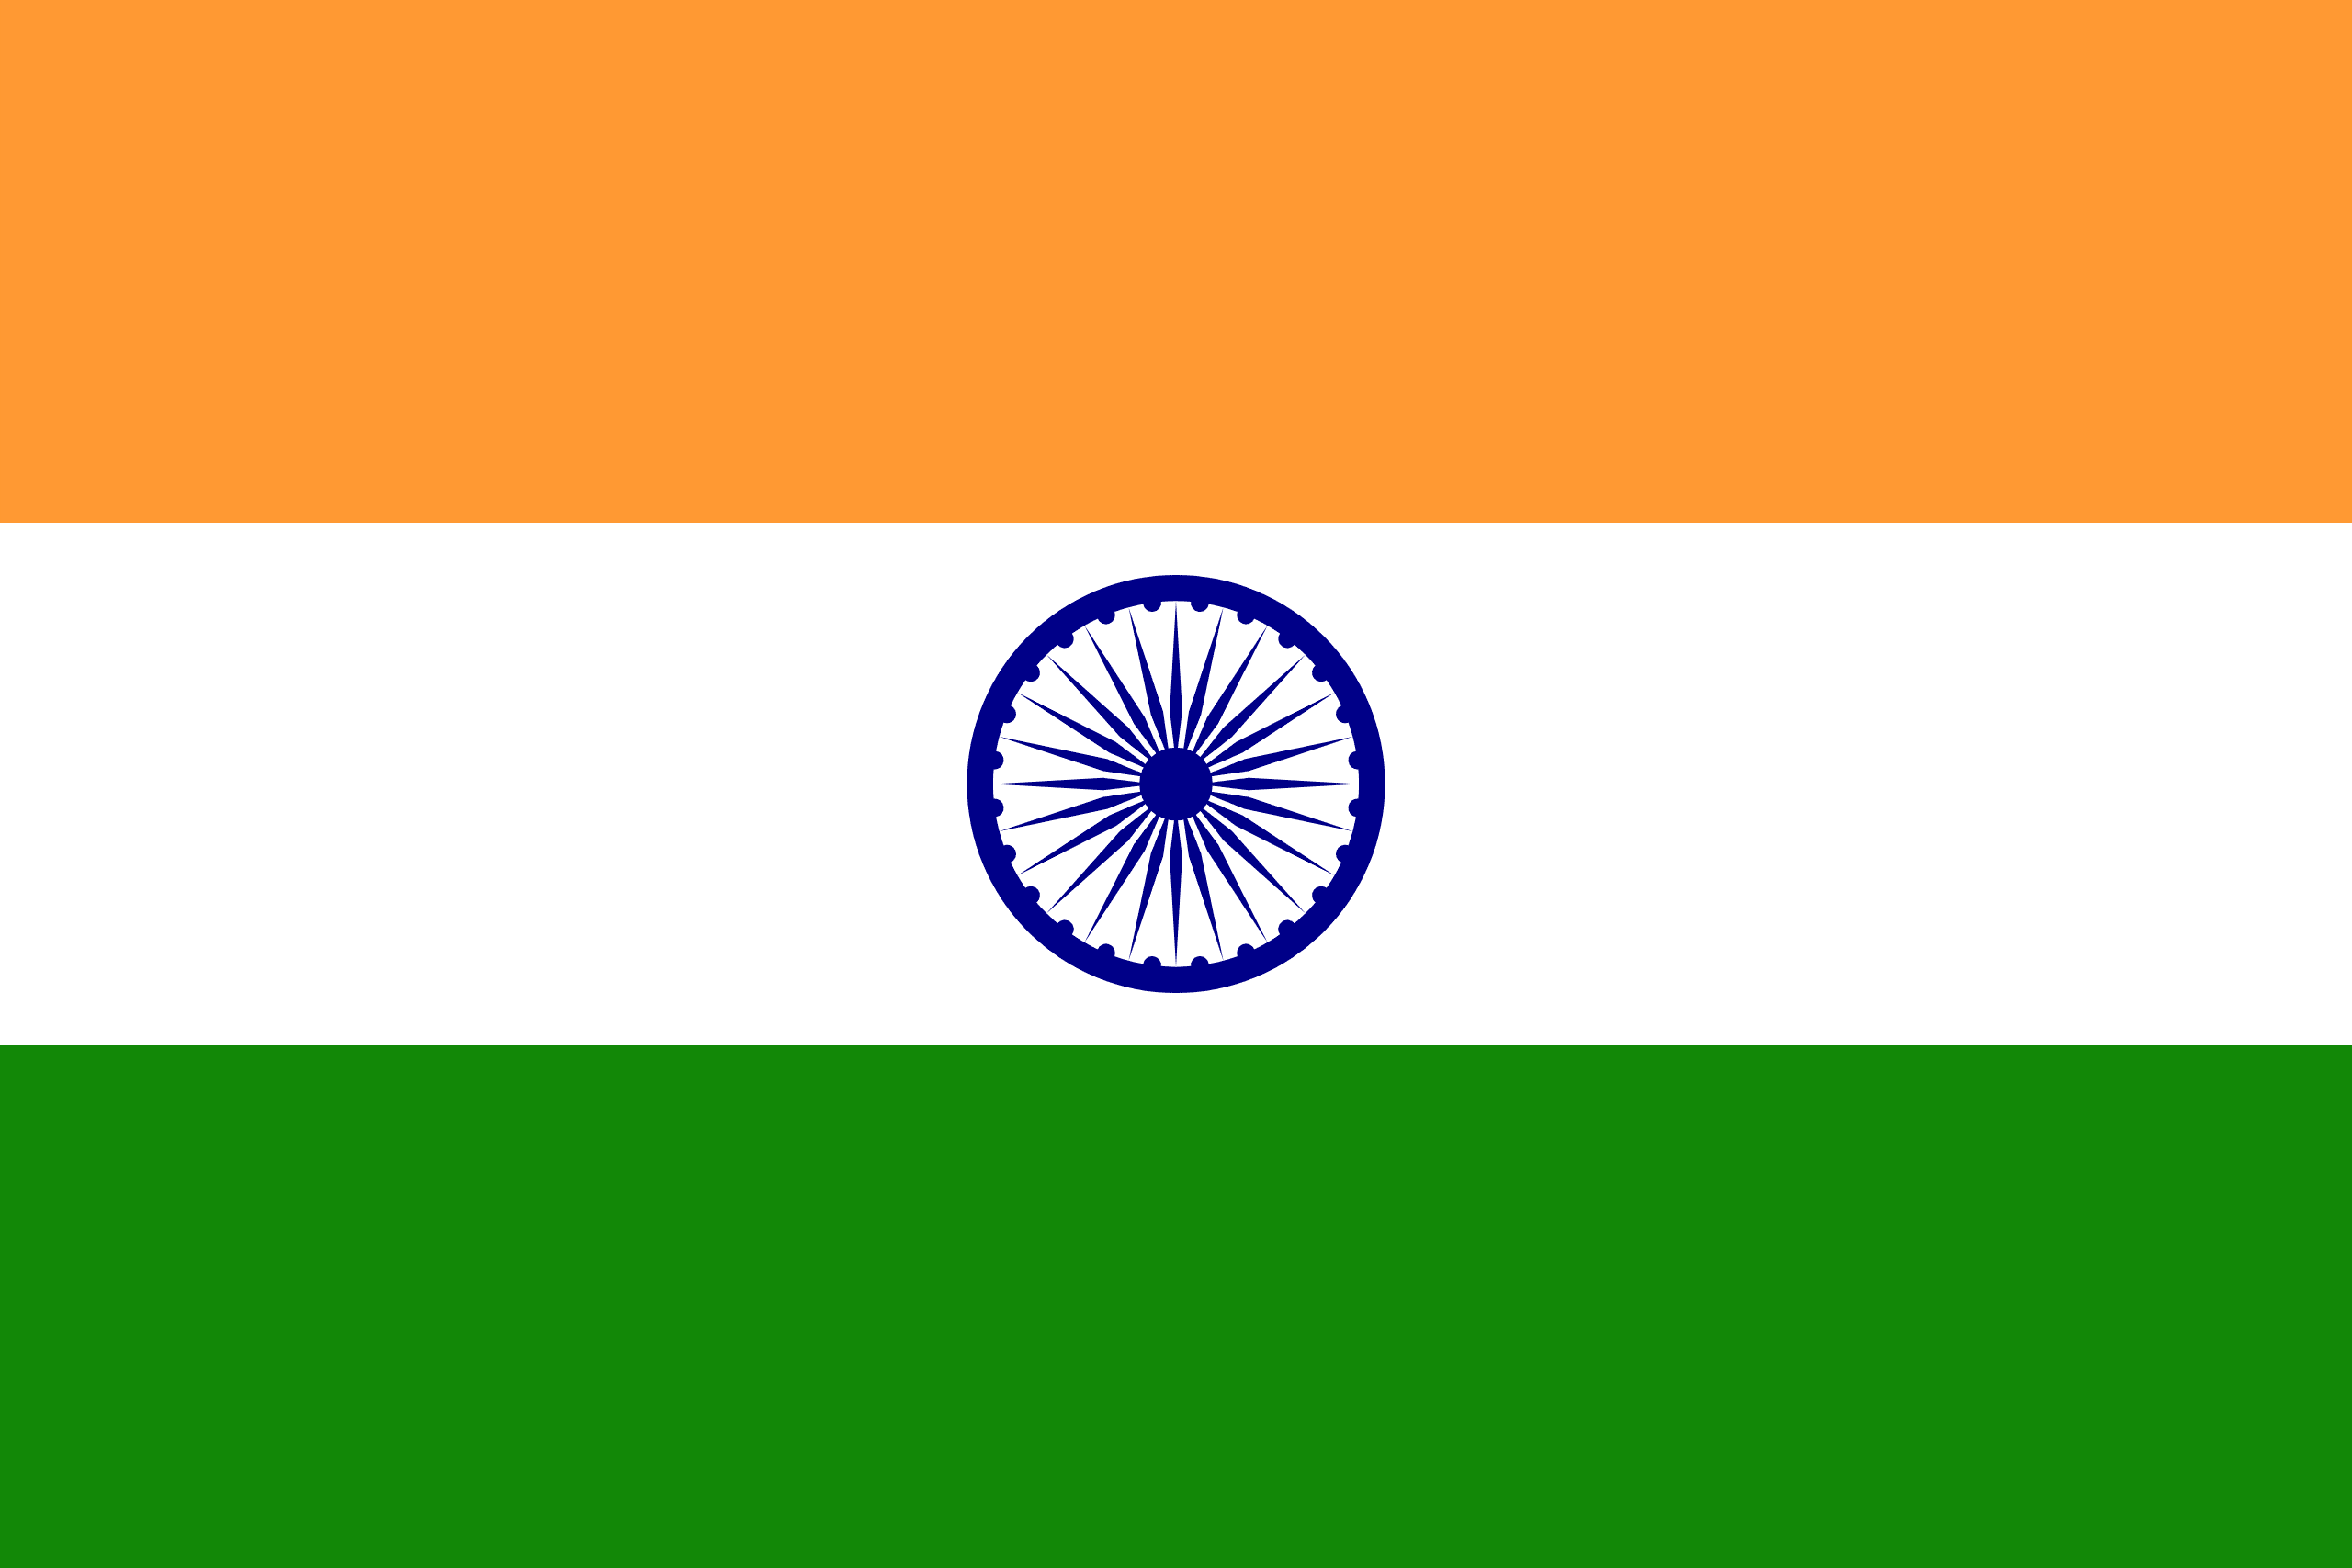 India flags of countries download a flag or use it on websites biocorpaavc Choice Image